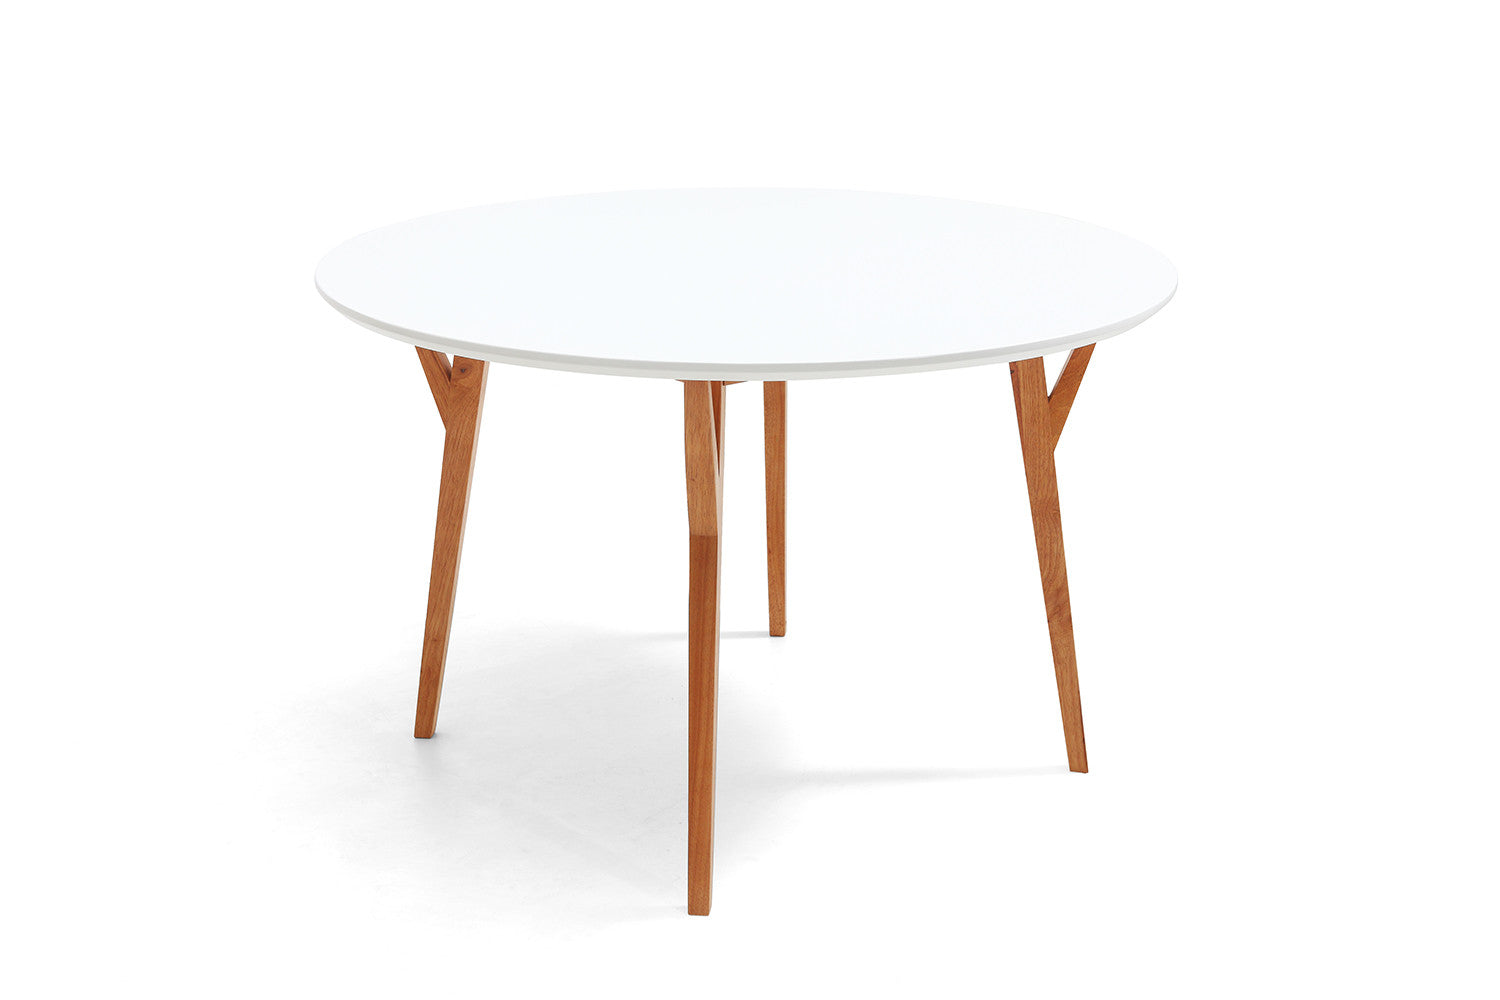 Table de salle manger ronde design scandinave moesa - Tables a manger design ...